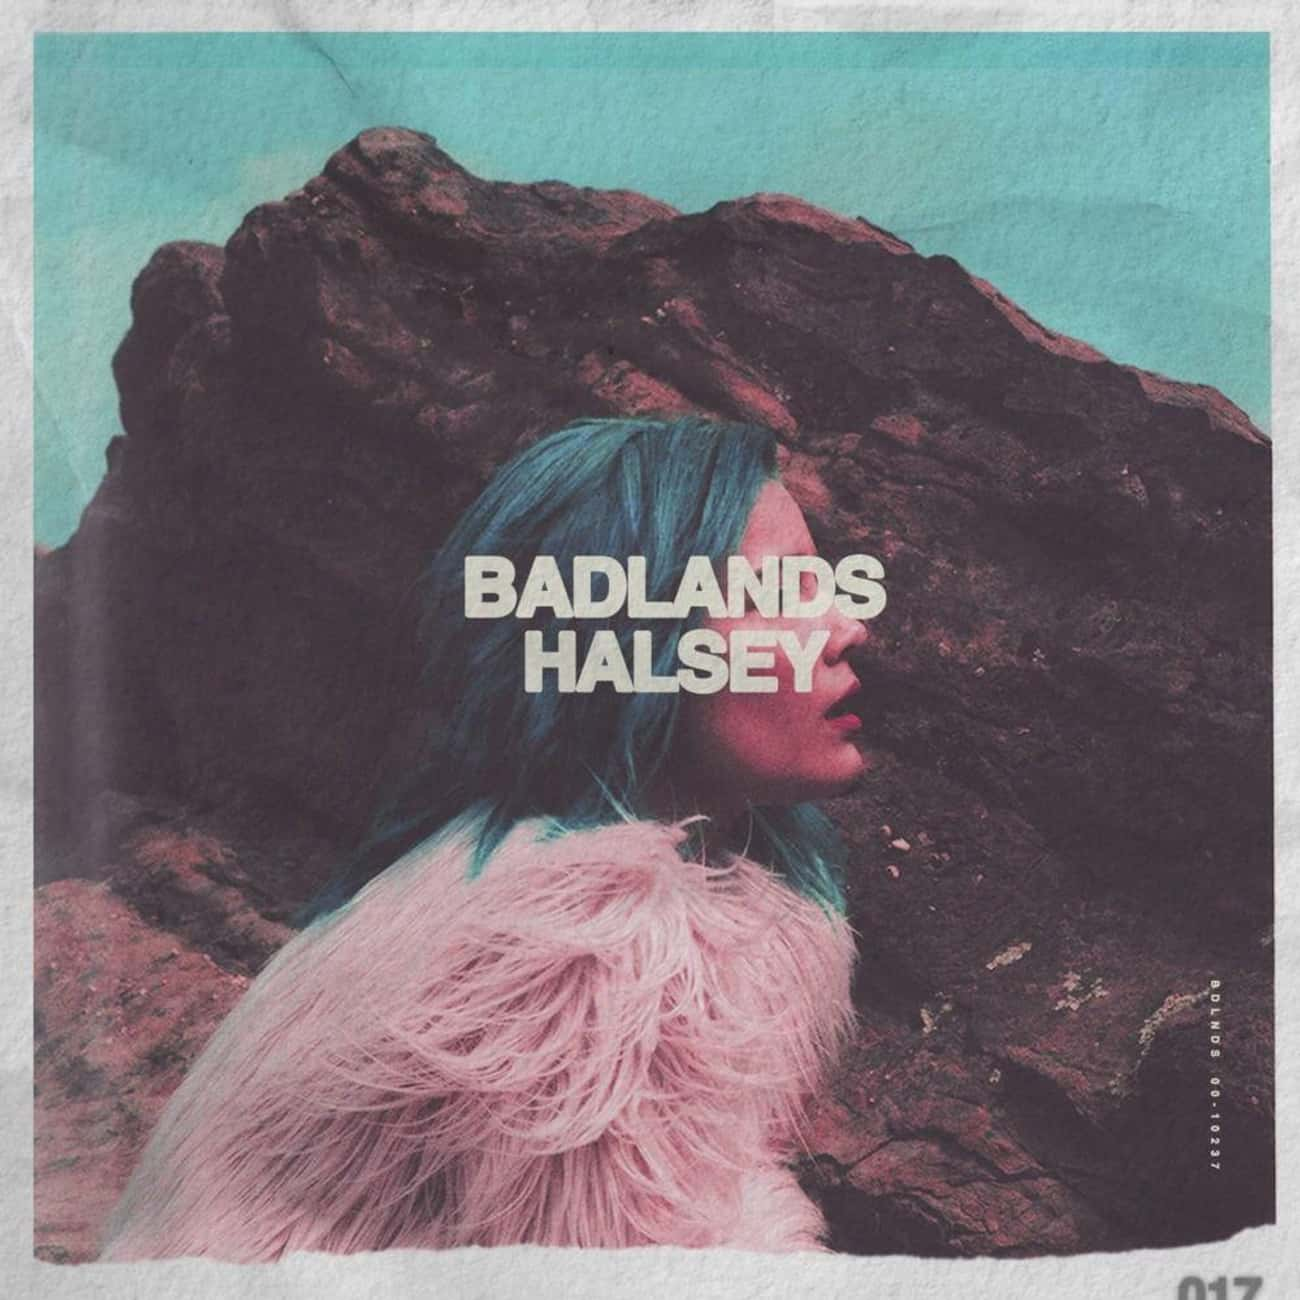 Badlands is listed (or ranked) 1 on the list Every Halsey Album, Ranked